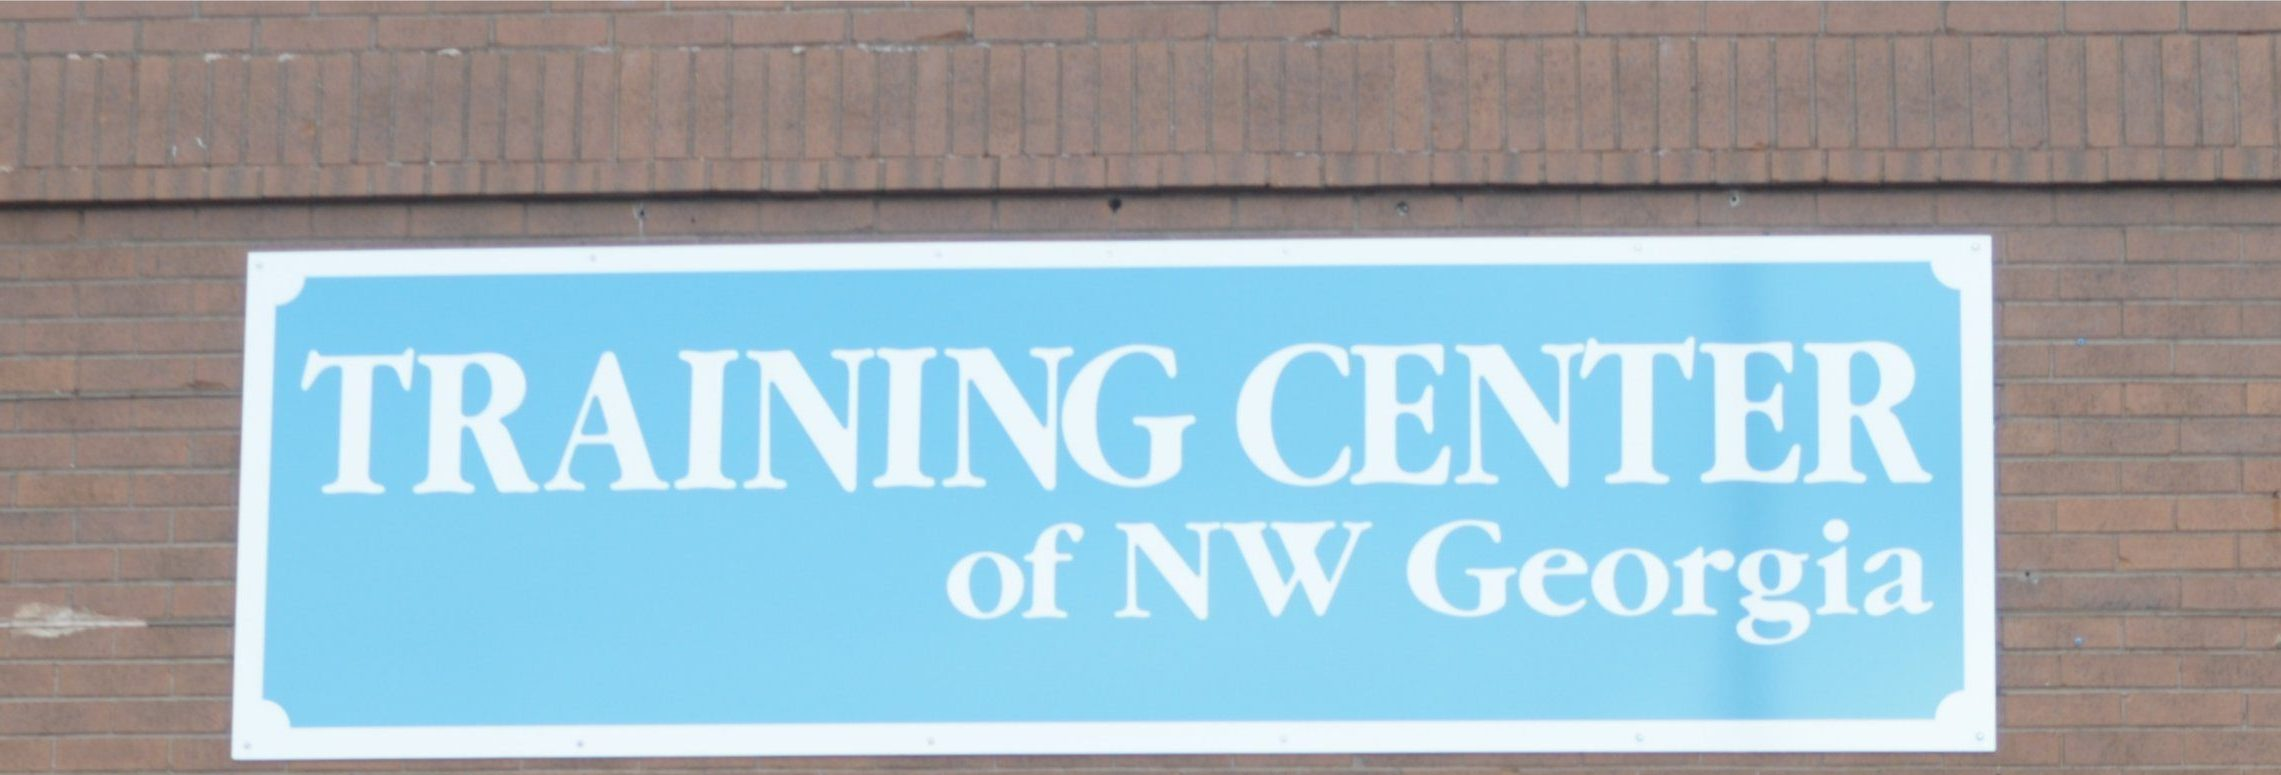 THE TRAINING CENTER OF NW GEORGIA